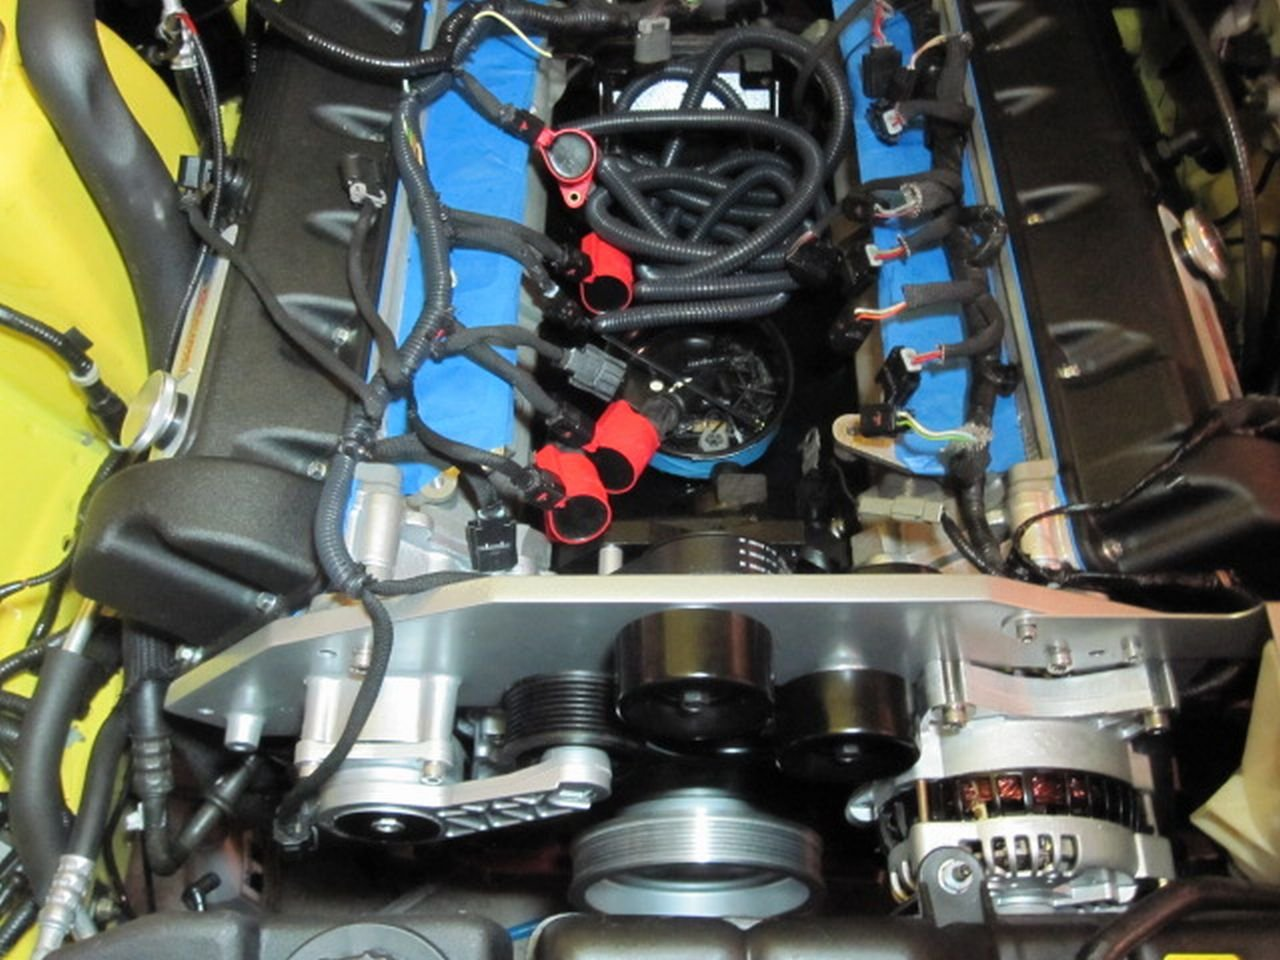 Wiring Diagram As Well 1995 Ford Mustang Gt On Rebuild Motorcycle